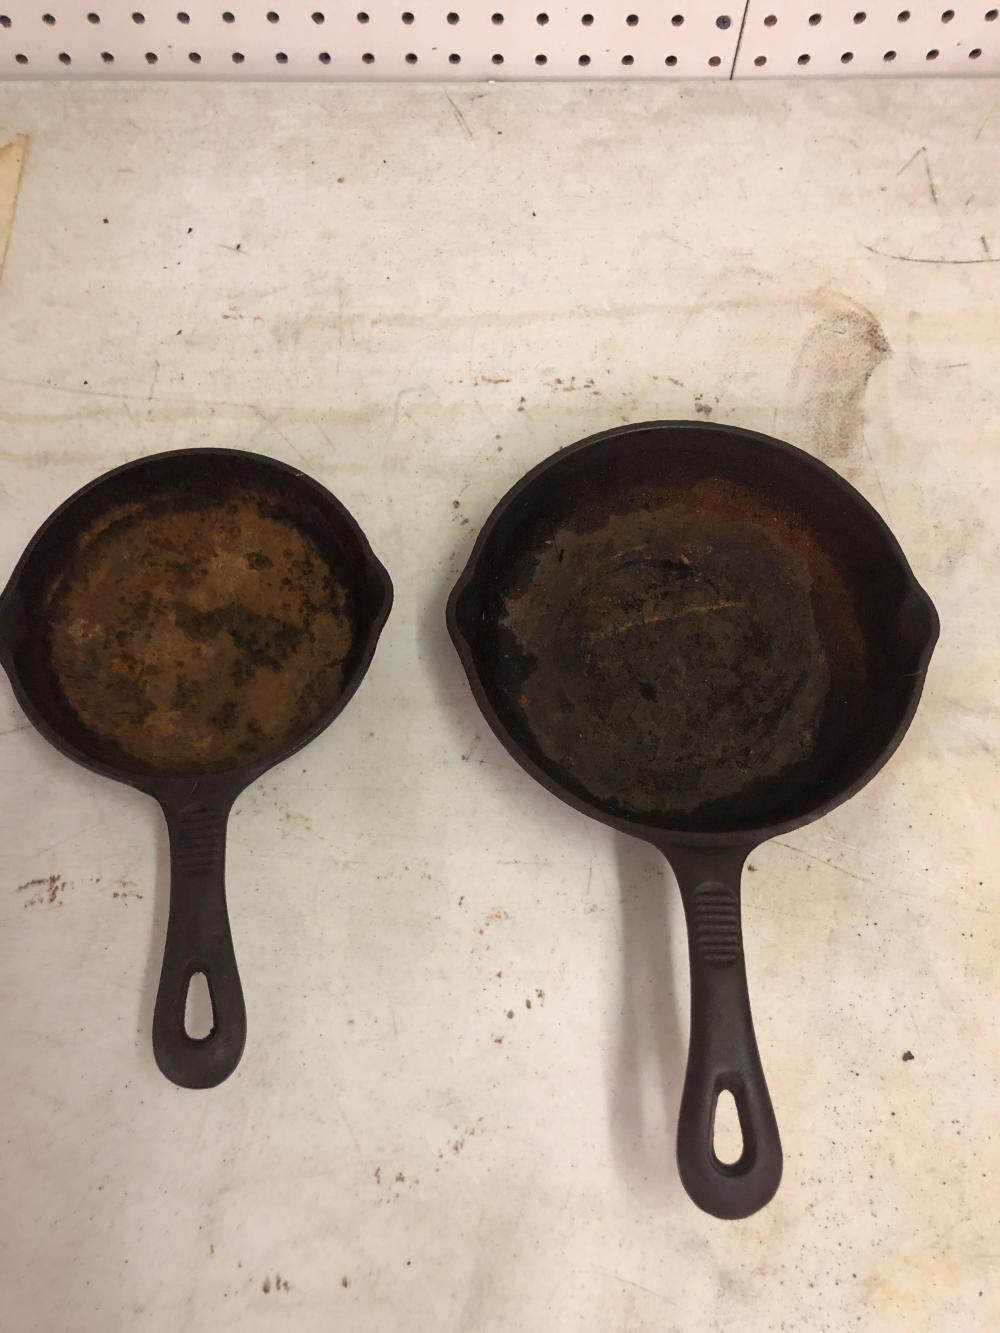 2 Cast Iron Skillets 8' Inch, and a 6' Inch